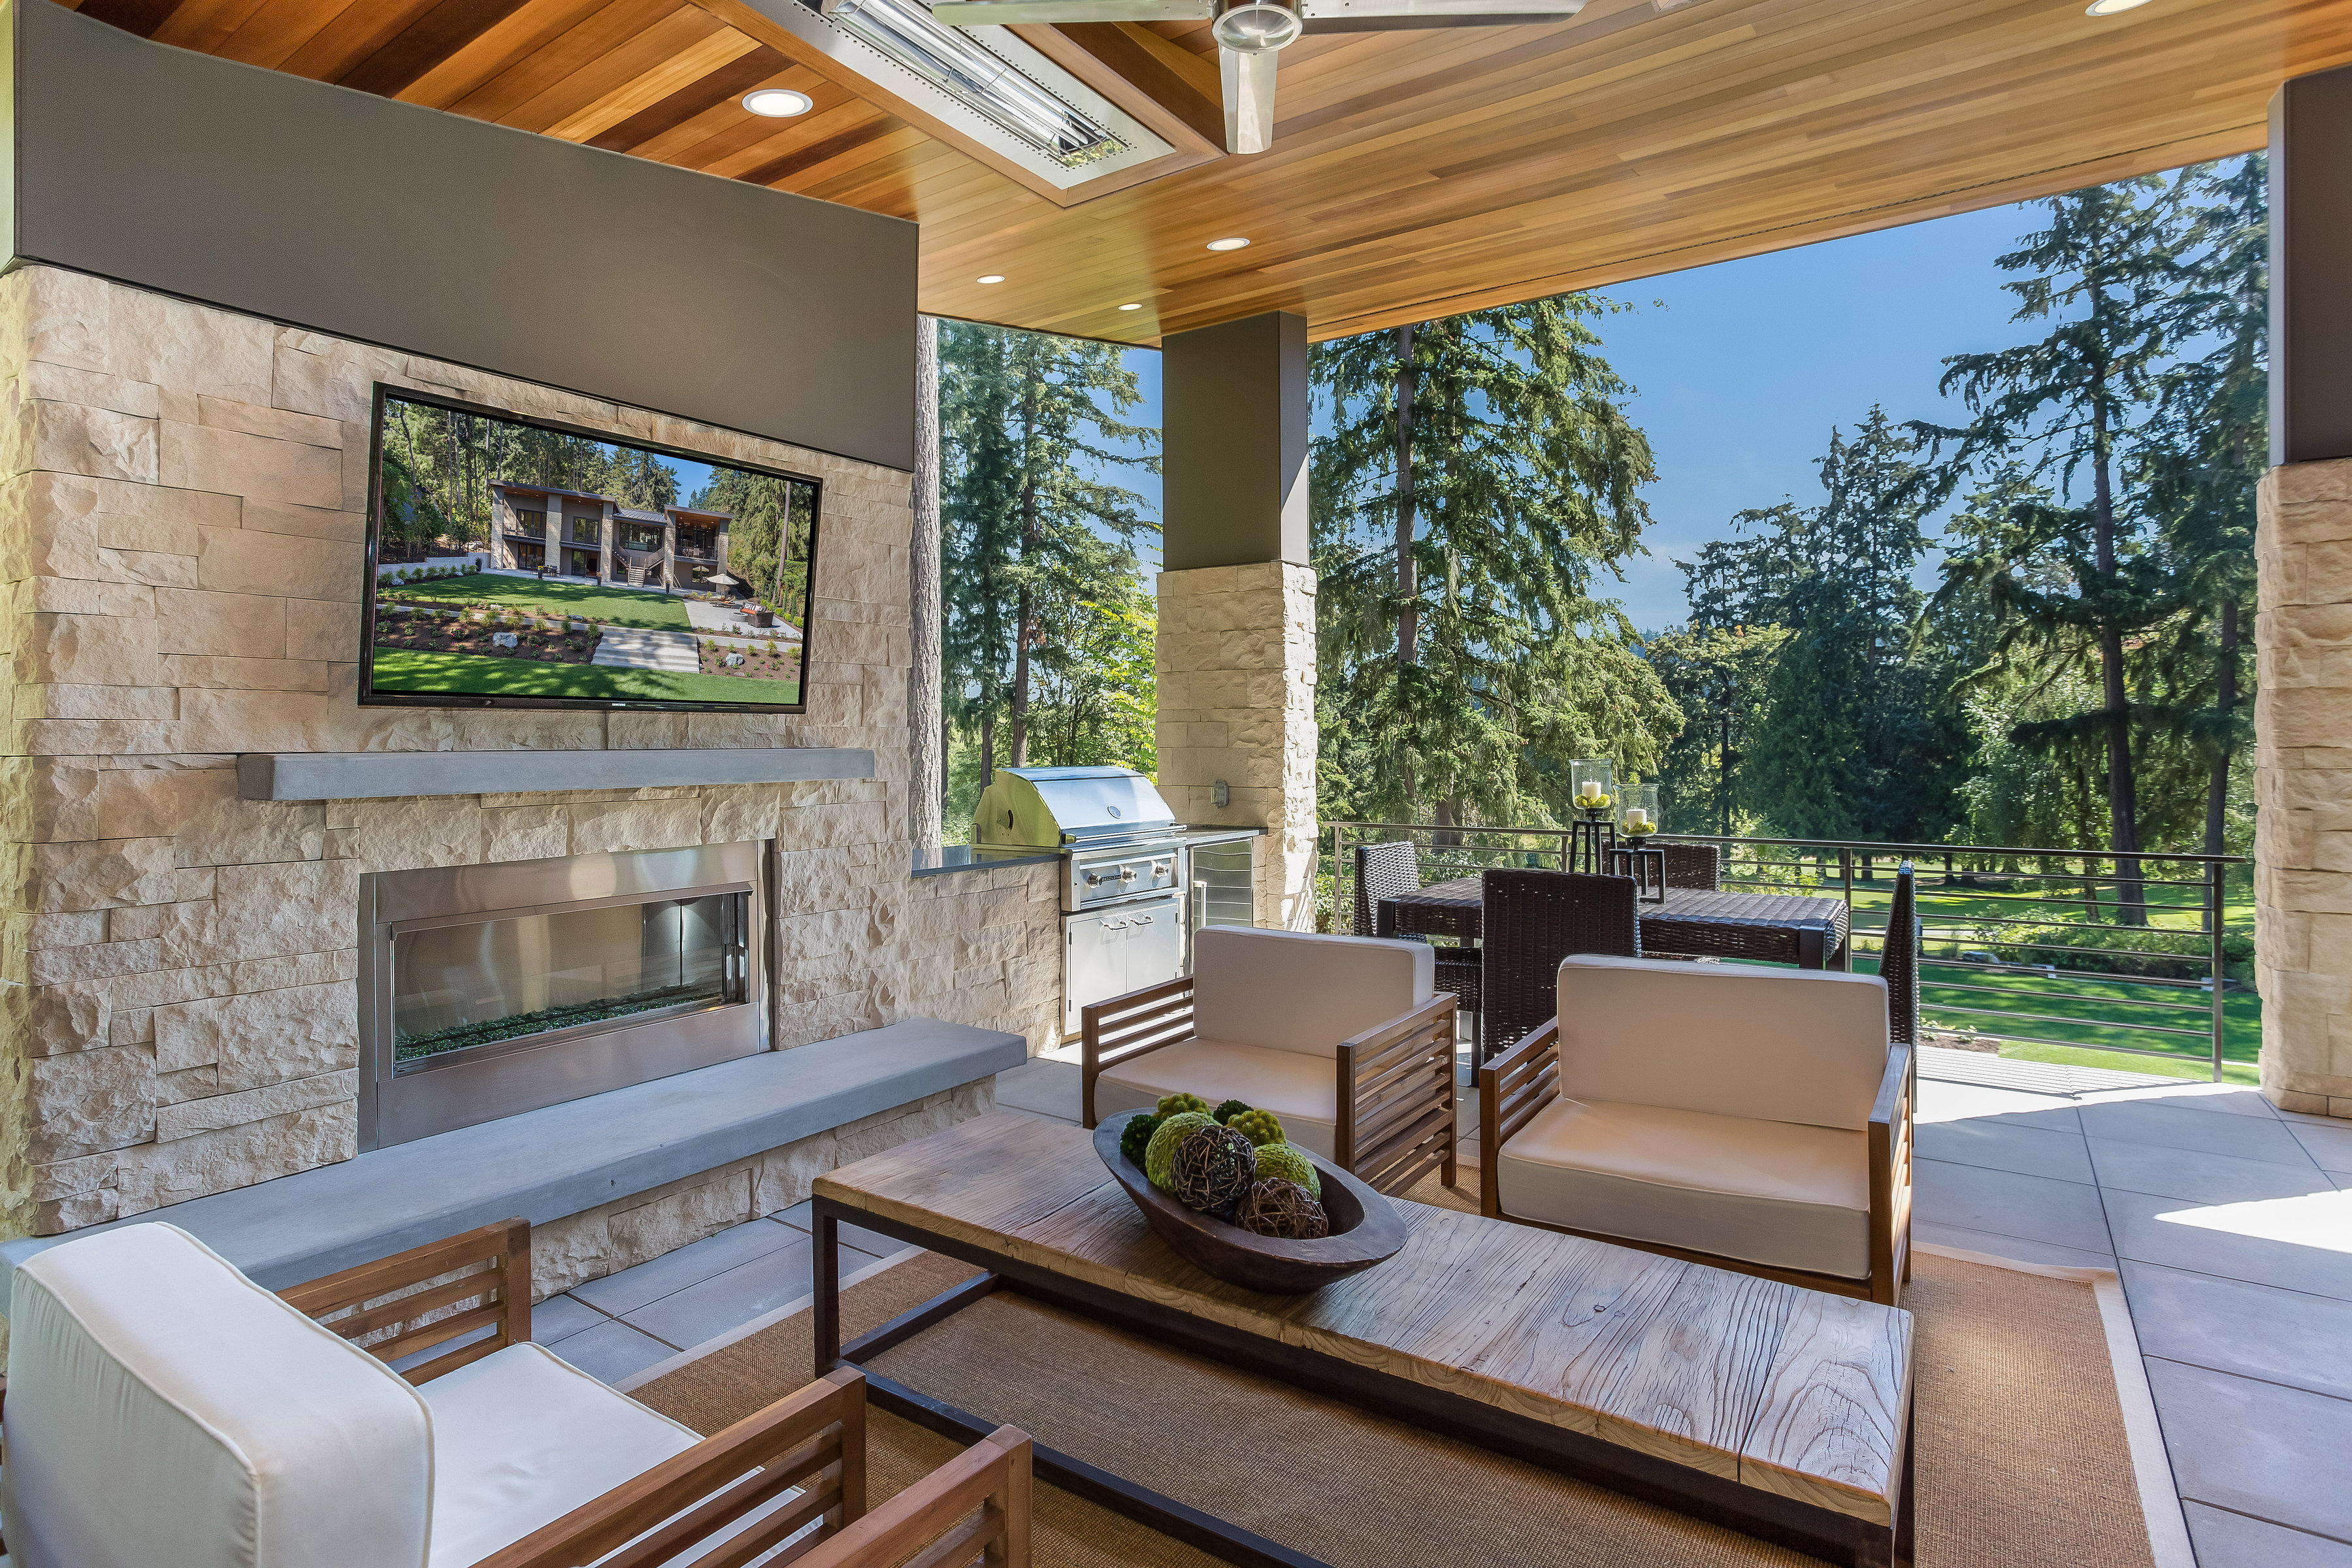 The new great room eldorado stone leads latest trend in for The great outdoor room